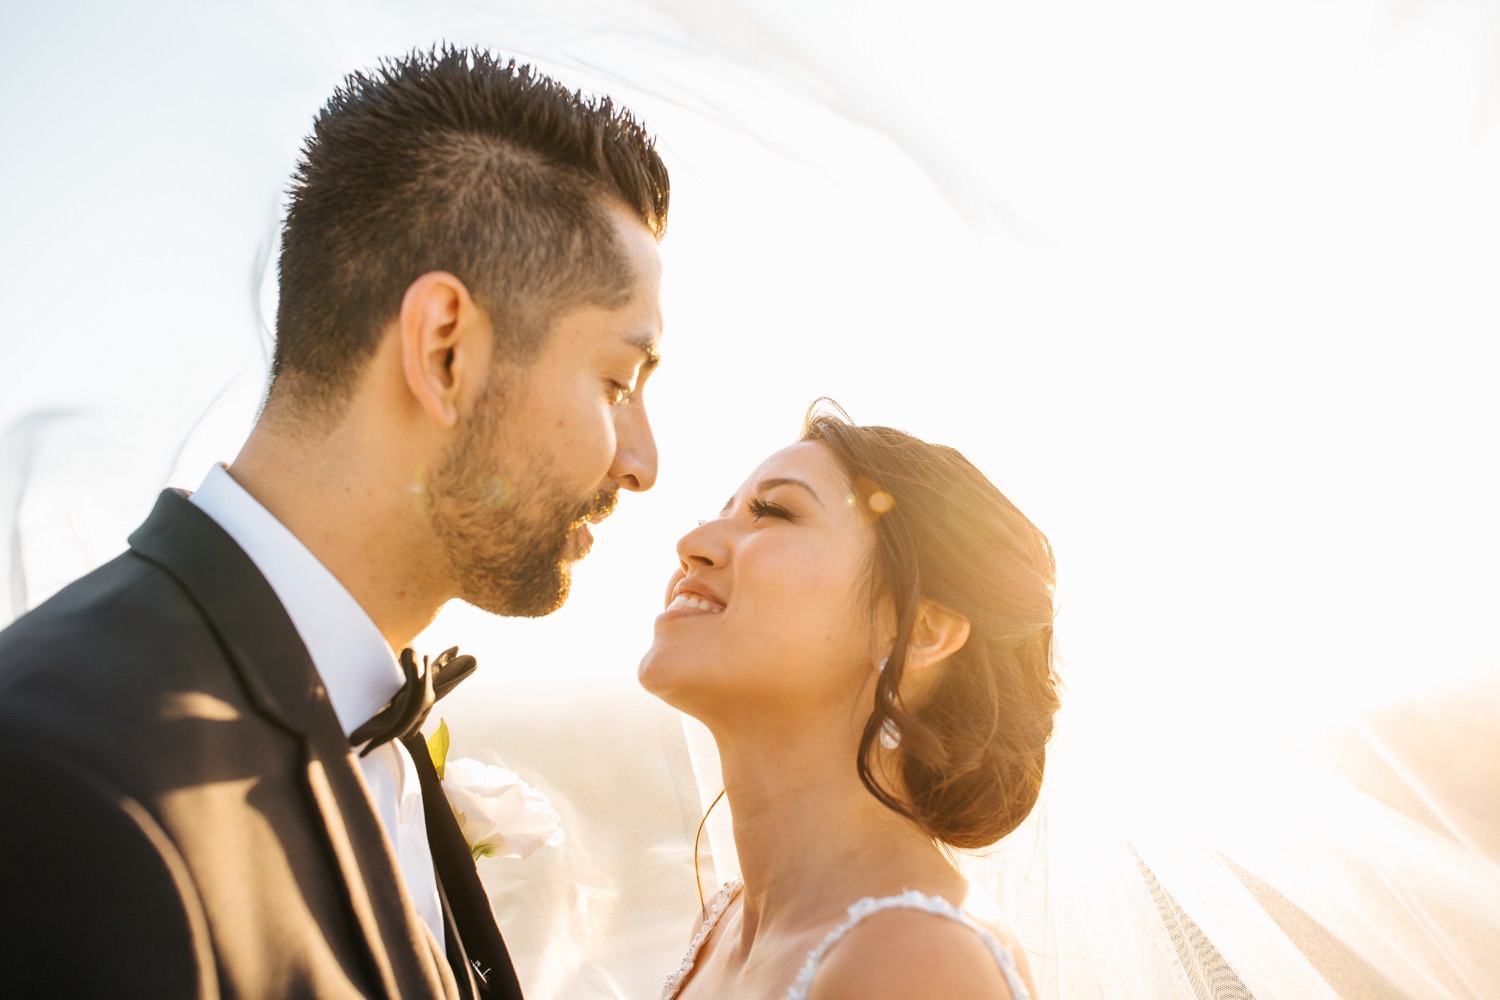 Love on the rooftop - LA Wedding Photography - https://brittneyhannonphotography.com